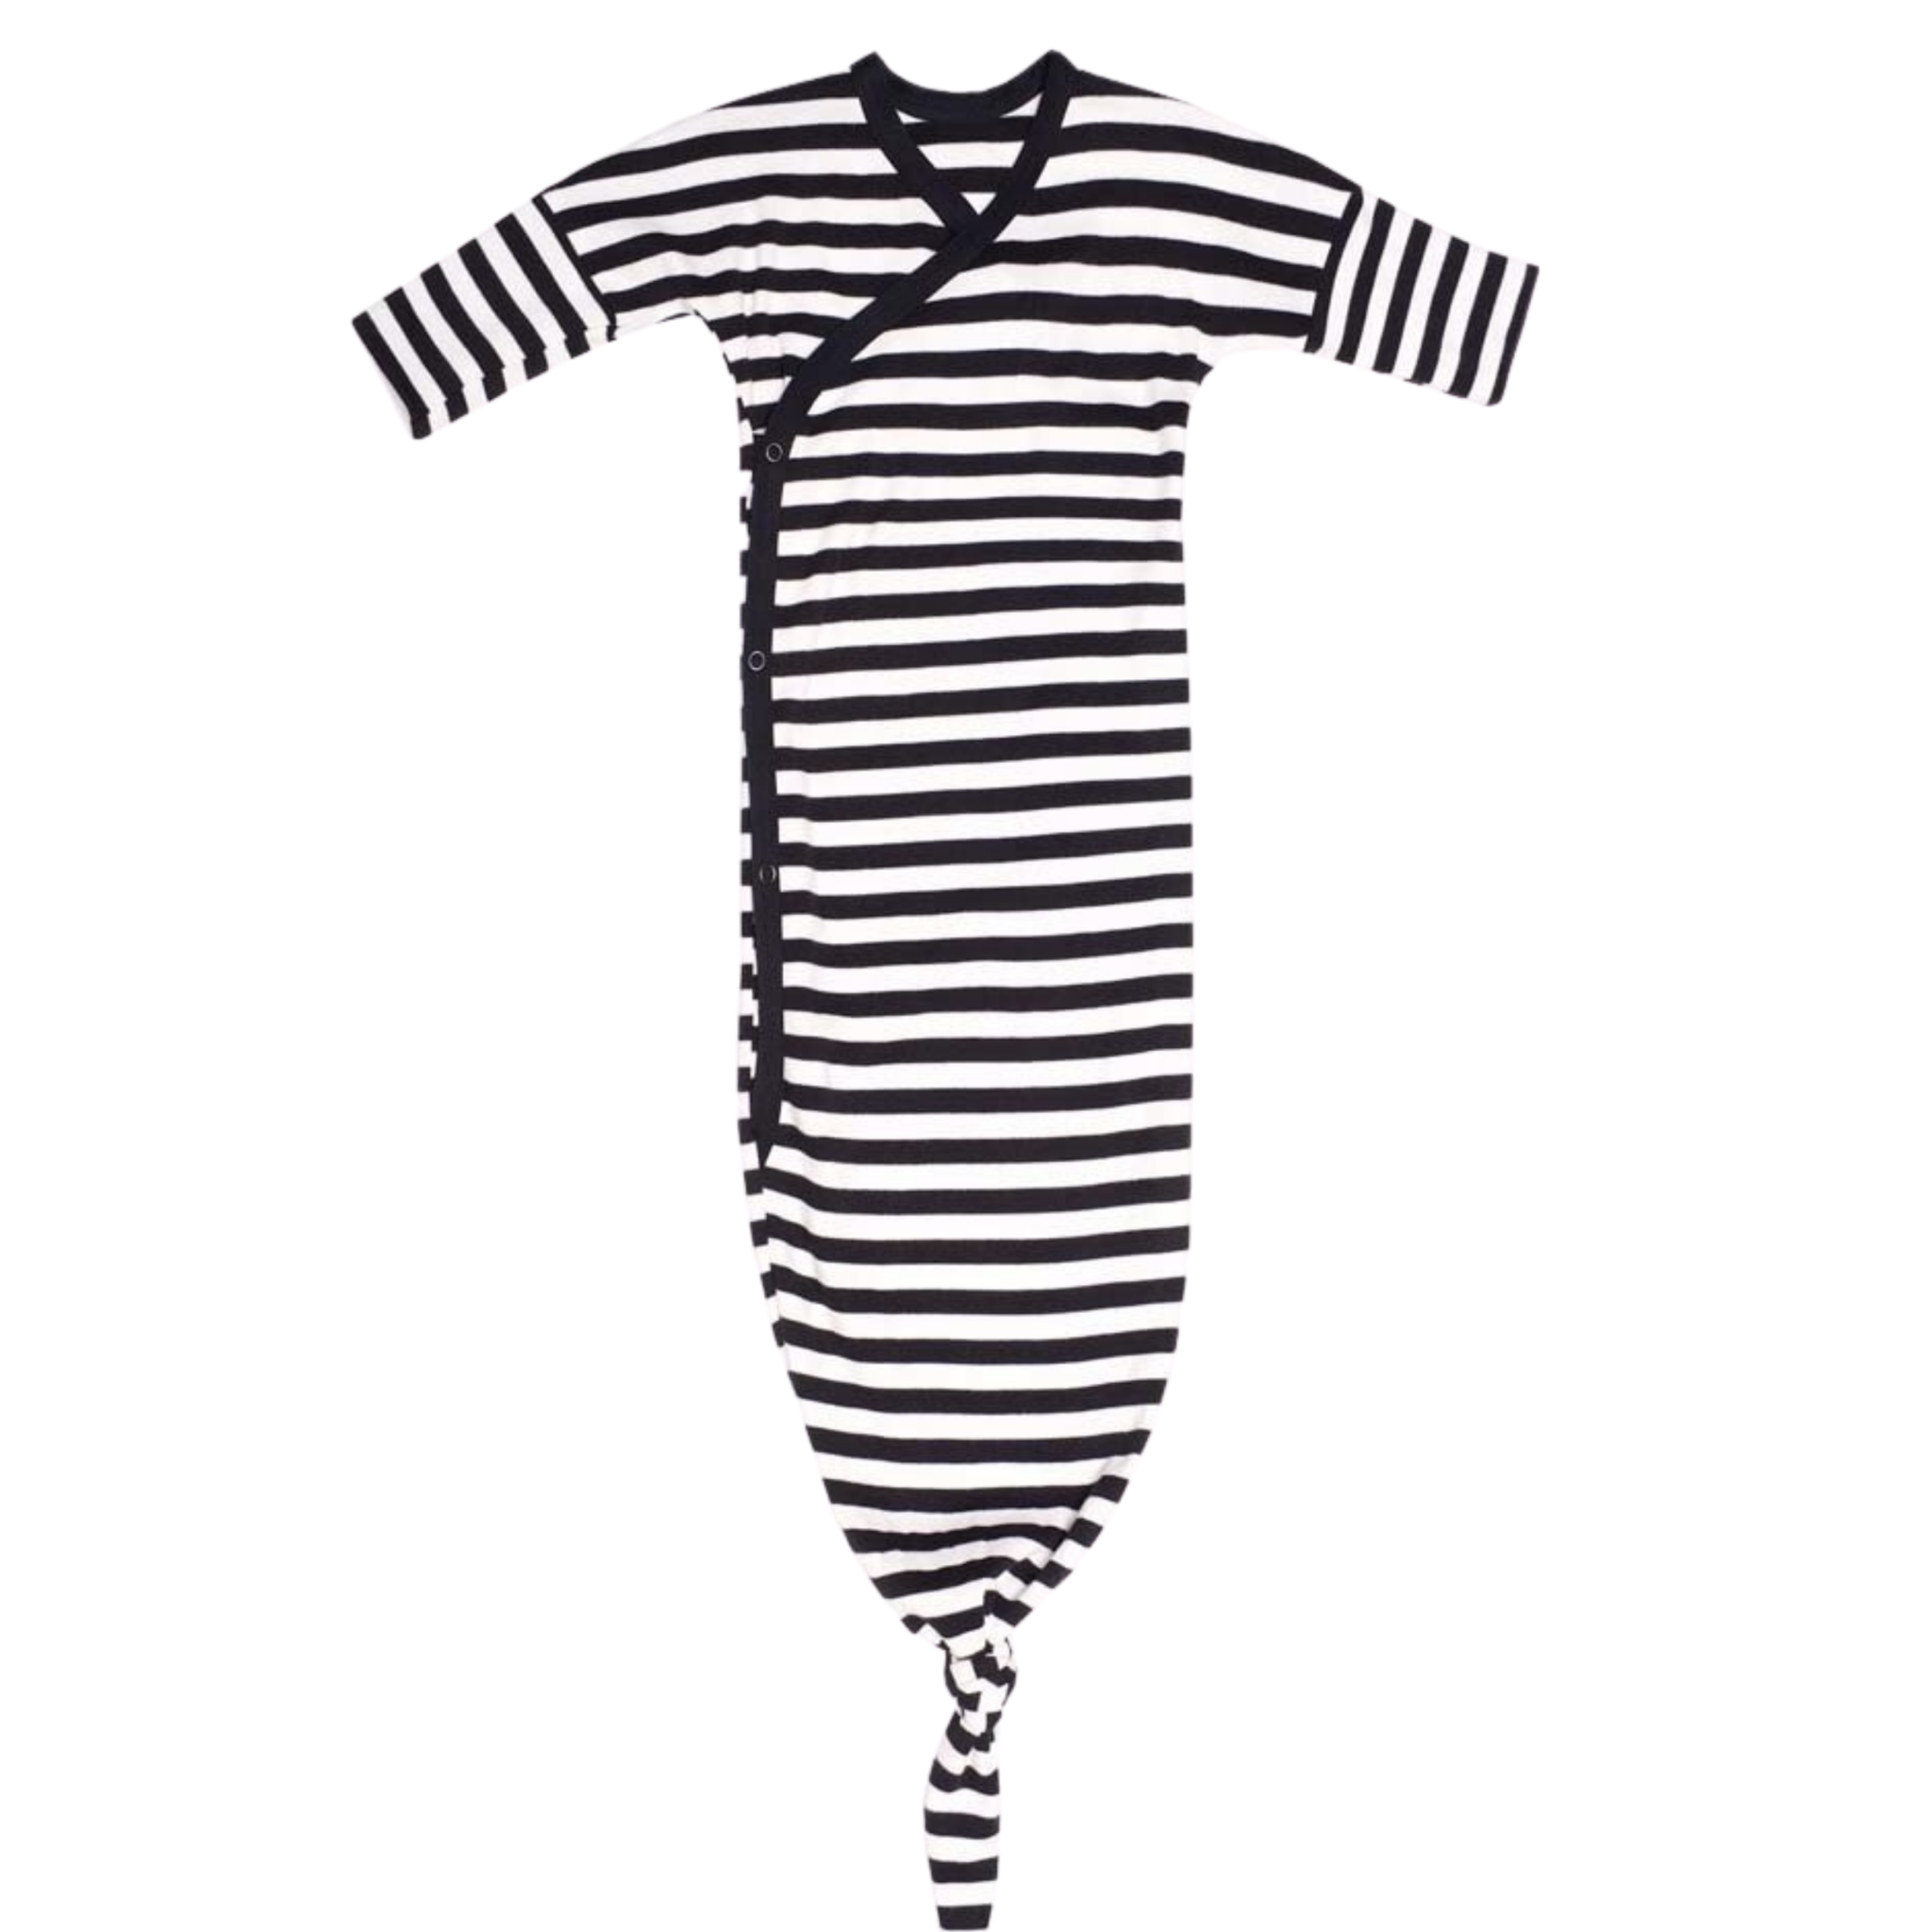 Wooly Organic KNOTTED BABY GOWN | KNOTTED GOWN FOR BABIES | BLACK AND WHITE